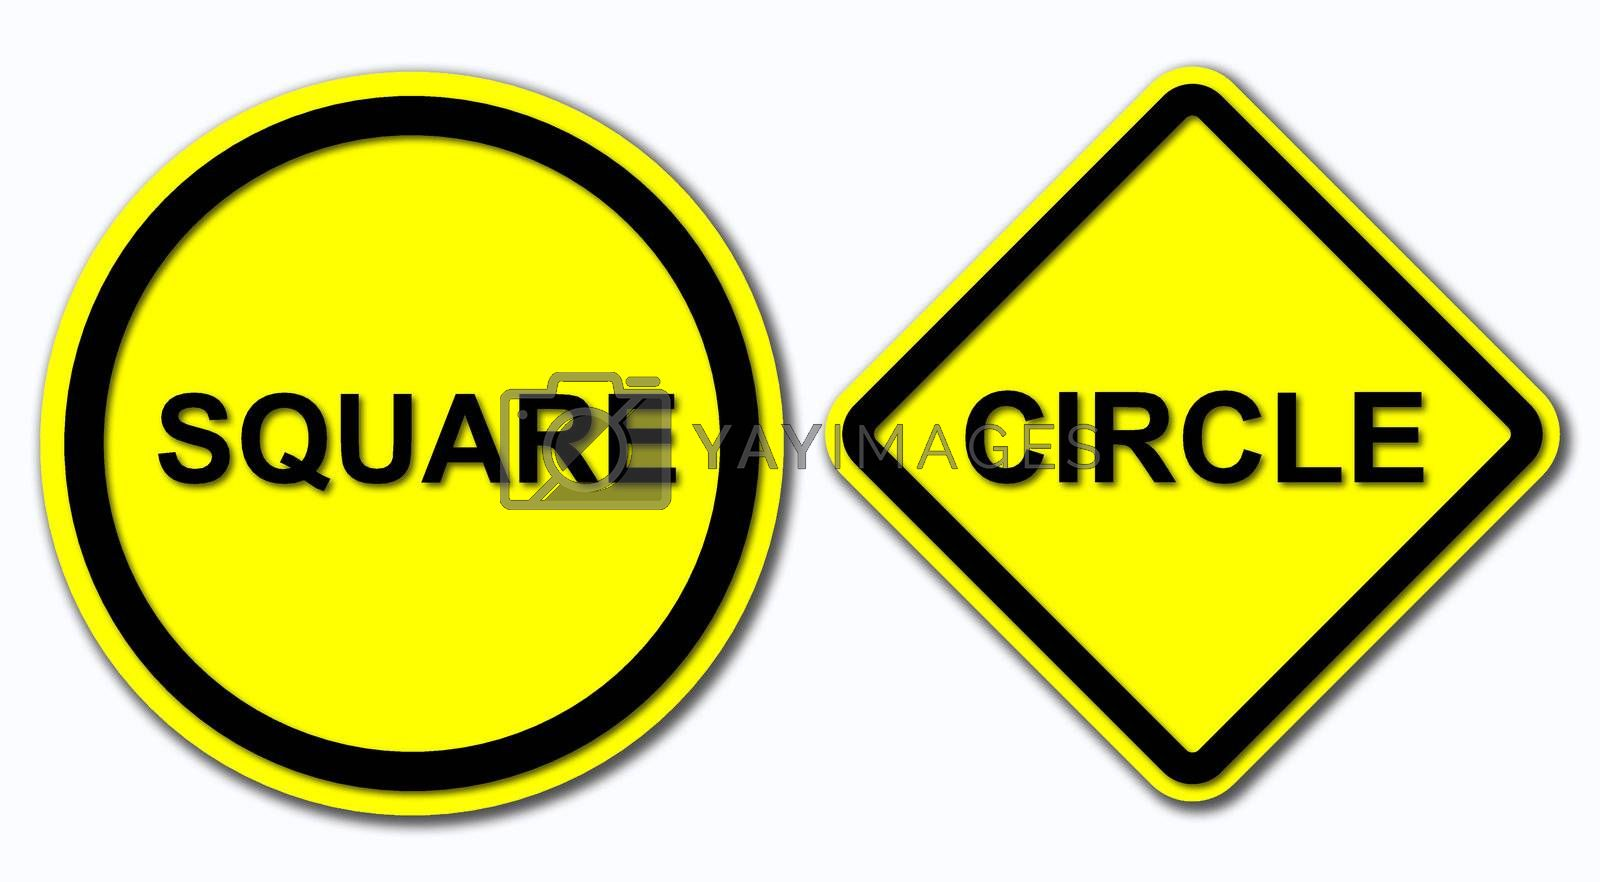 Sign of Suare and Circle on White Background